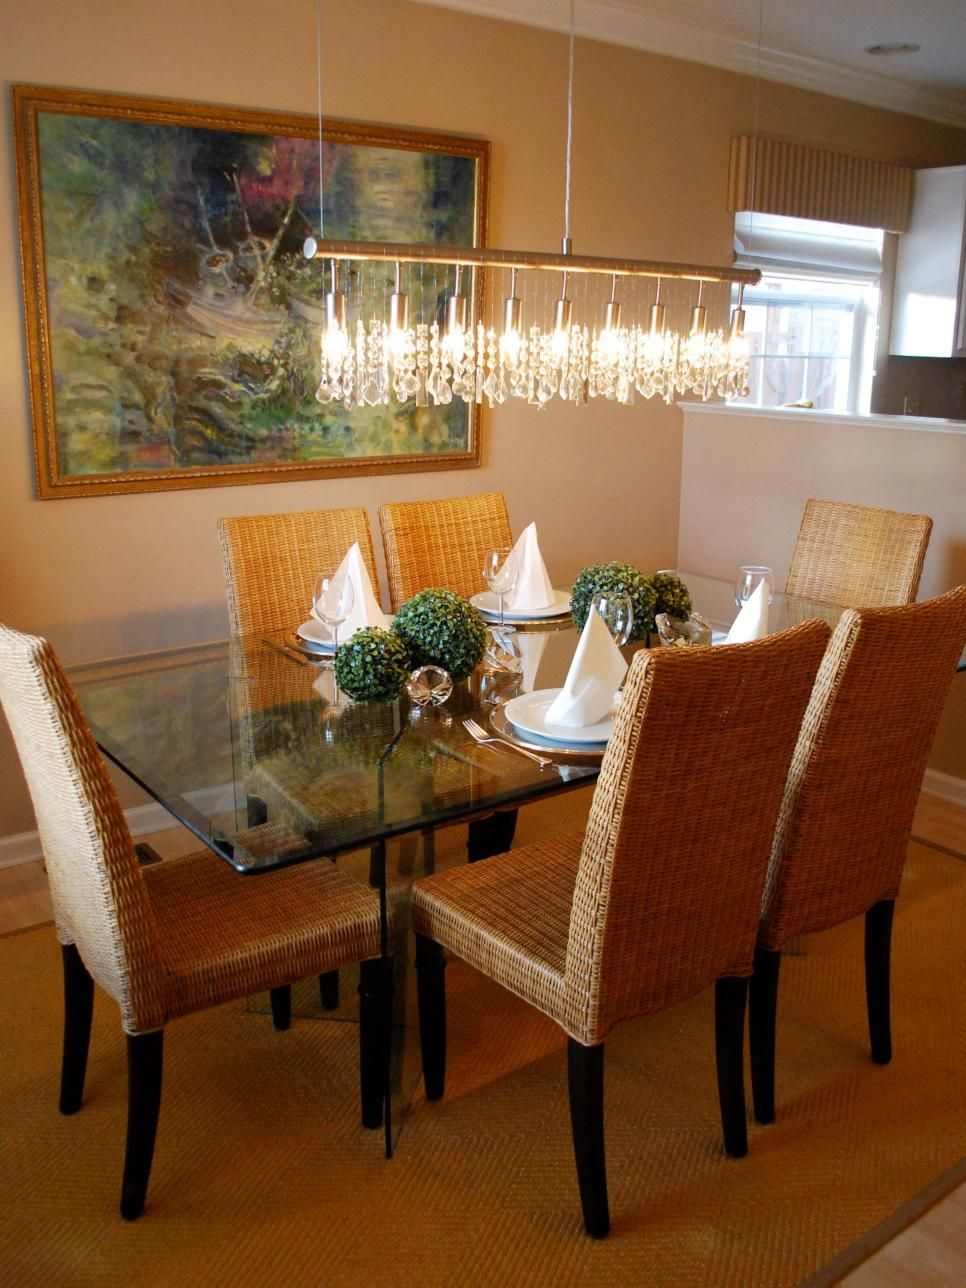 Ready To Transform Your Dining Room But Dont Want Spend A Fortune Check Out These Stylish Yet Inexpensive Spaces From Fellow Readers